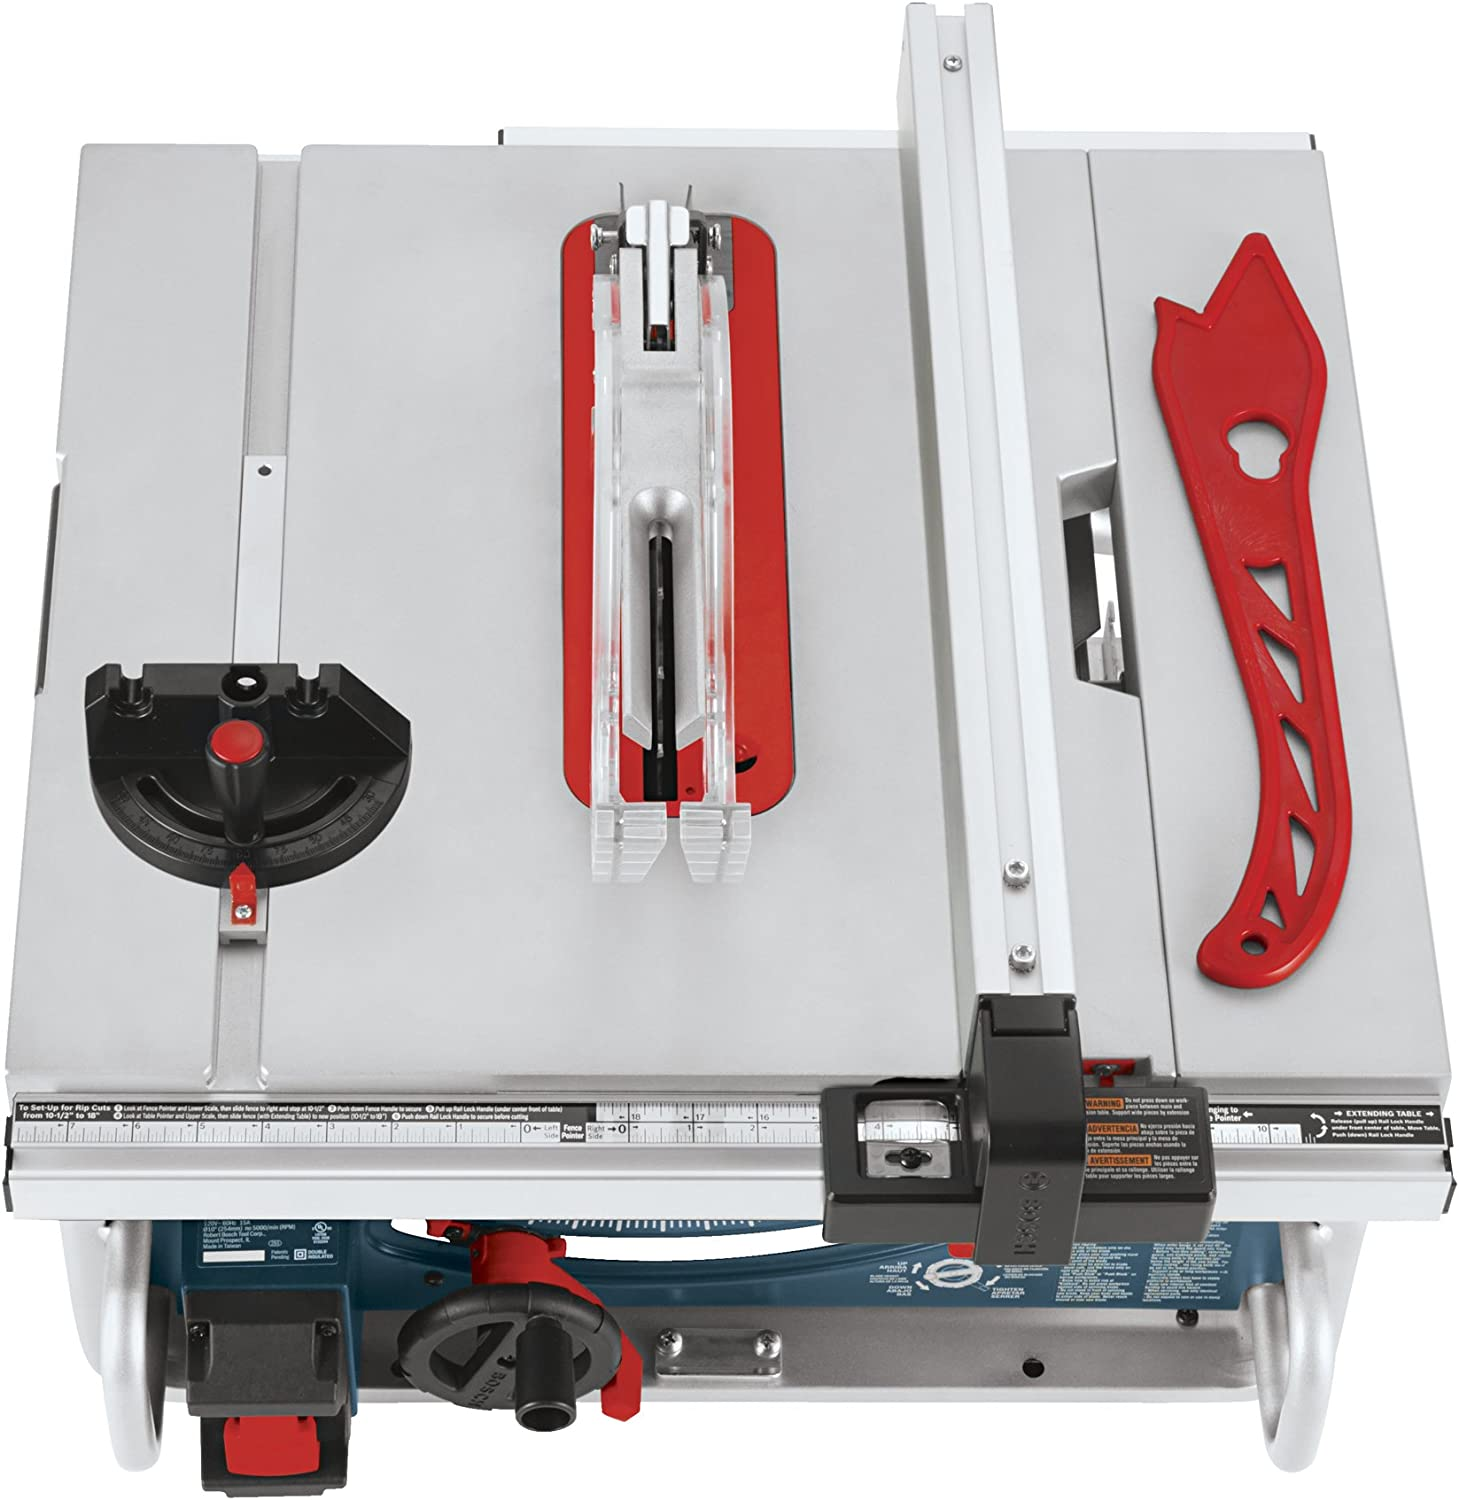 Bosch GTS1031 Table Saws product image 9